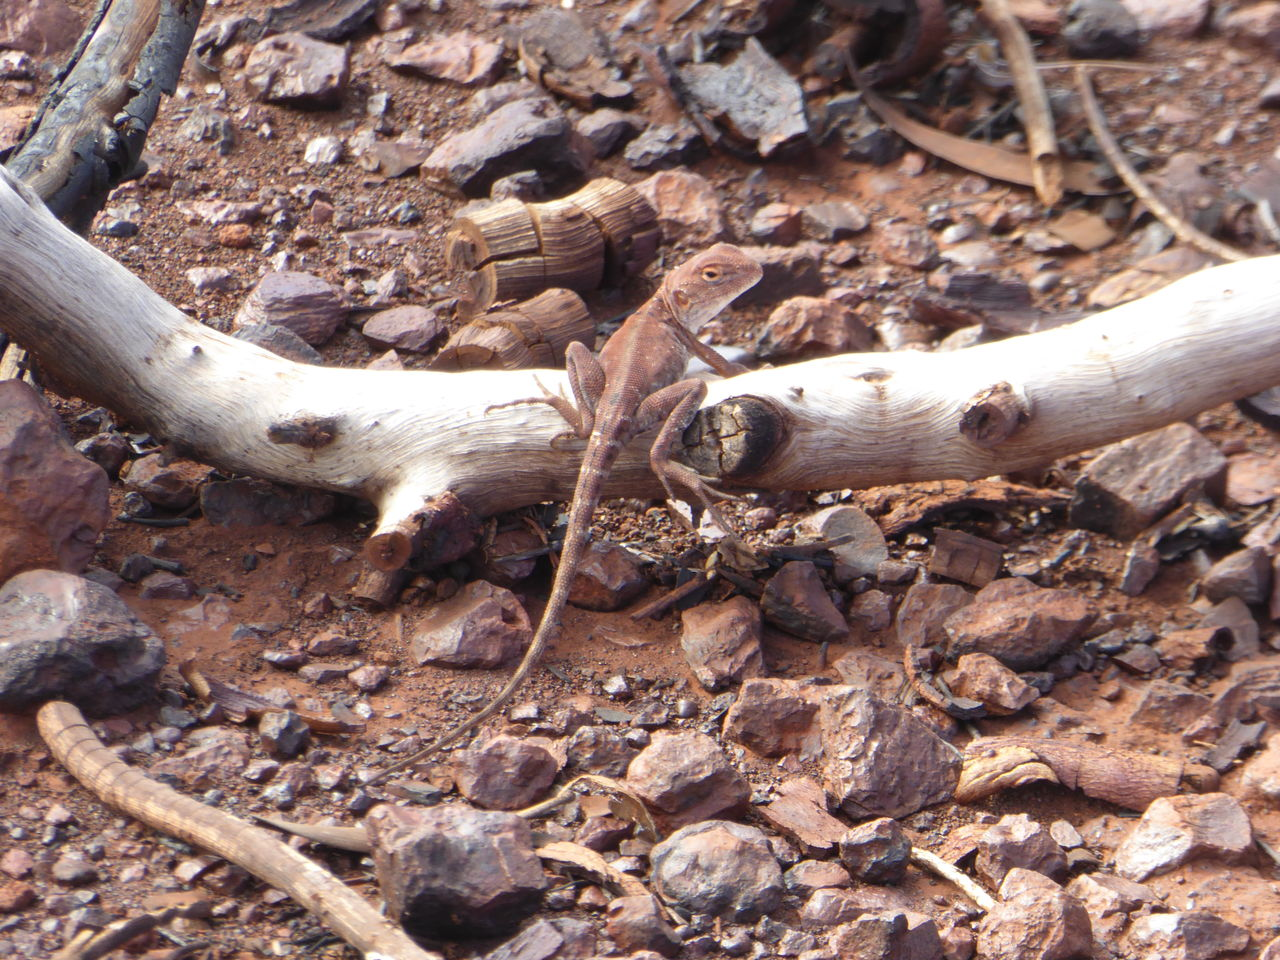 no people, day, animal bone, field, wood - material, outdoors, nature, close-up, tree trunk, tree, dead tree